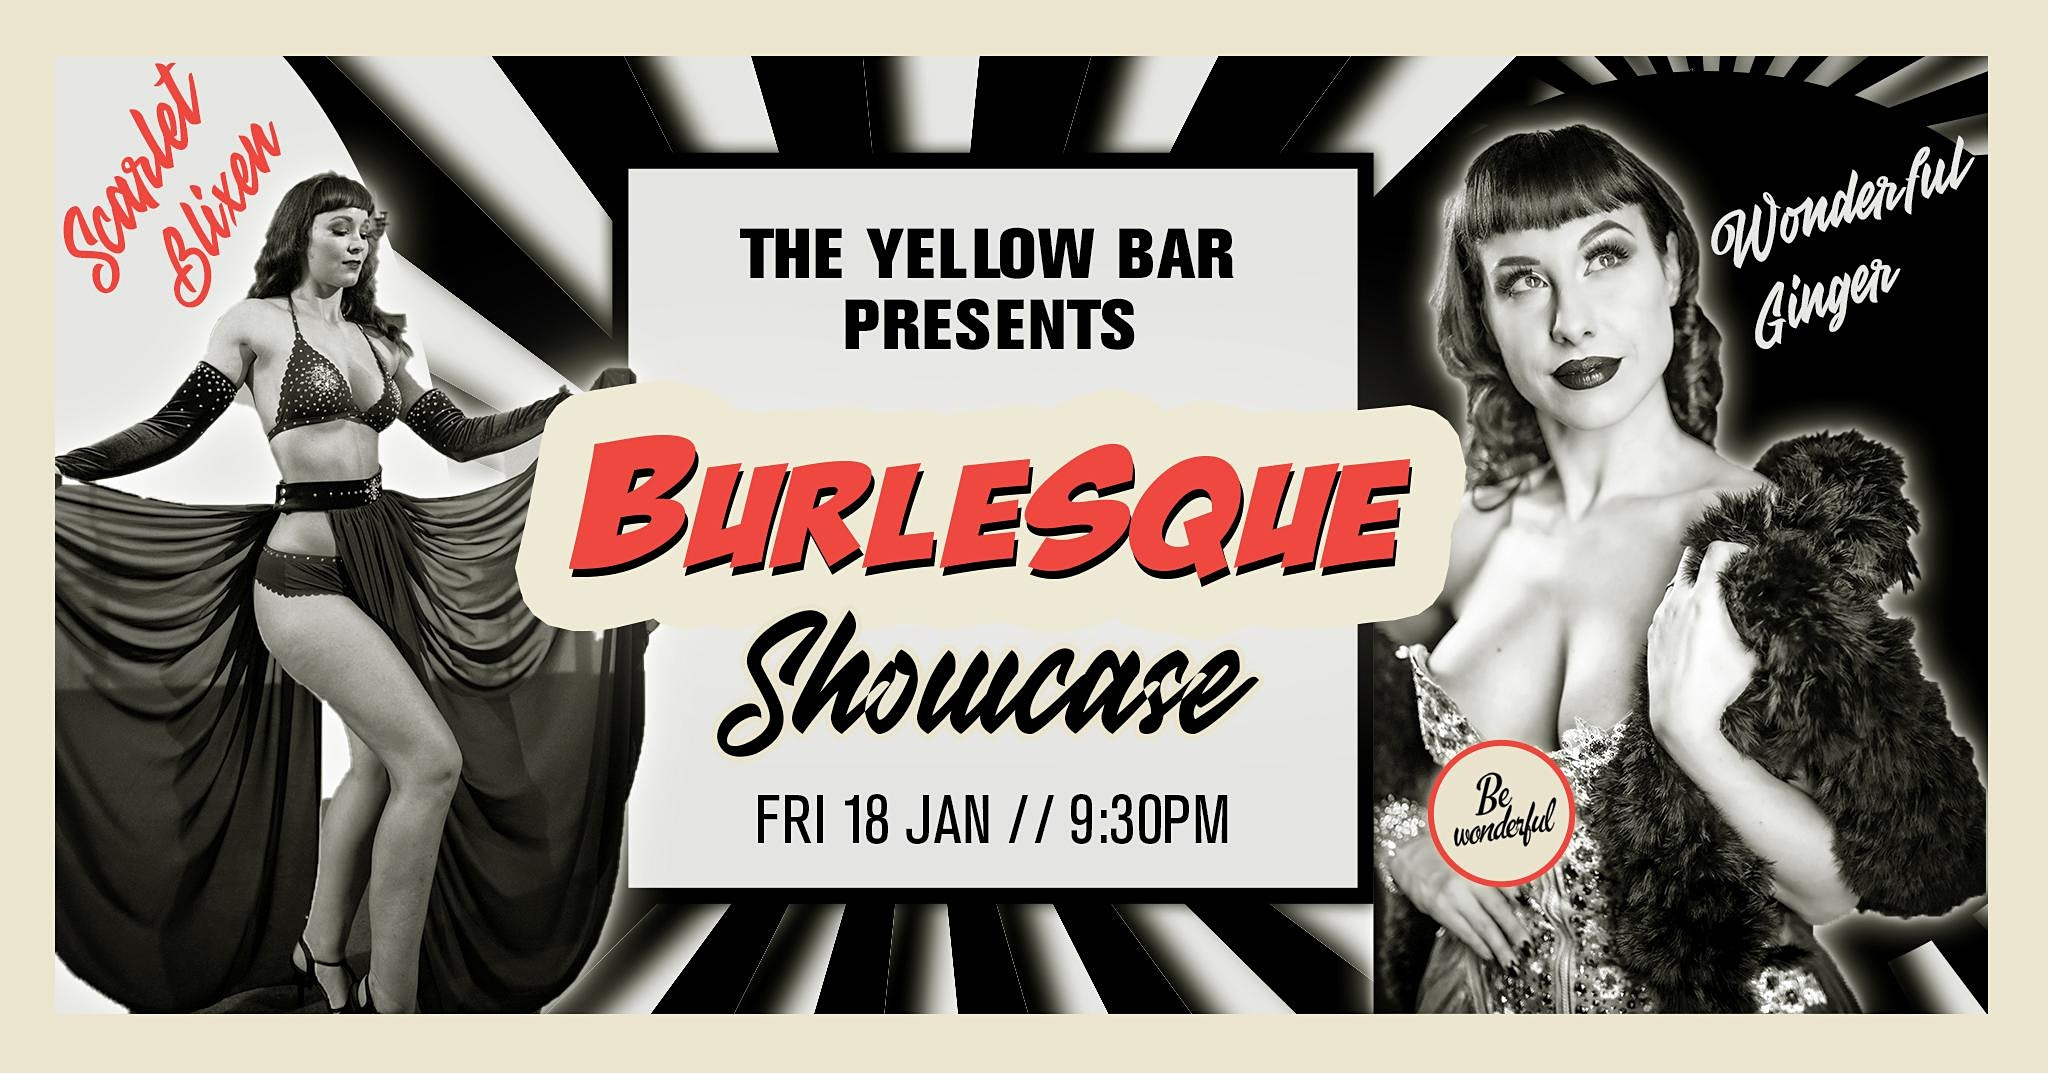 Burlesque Showcase - The Yellow Bar